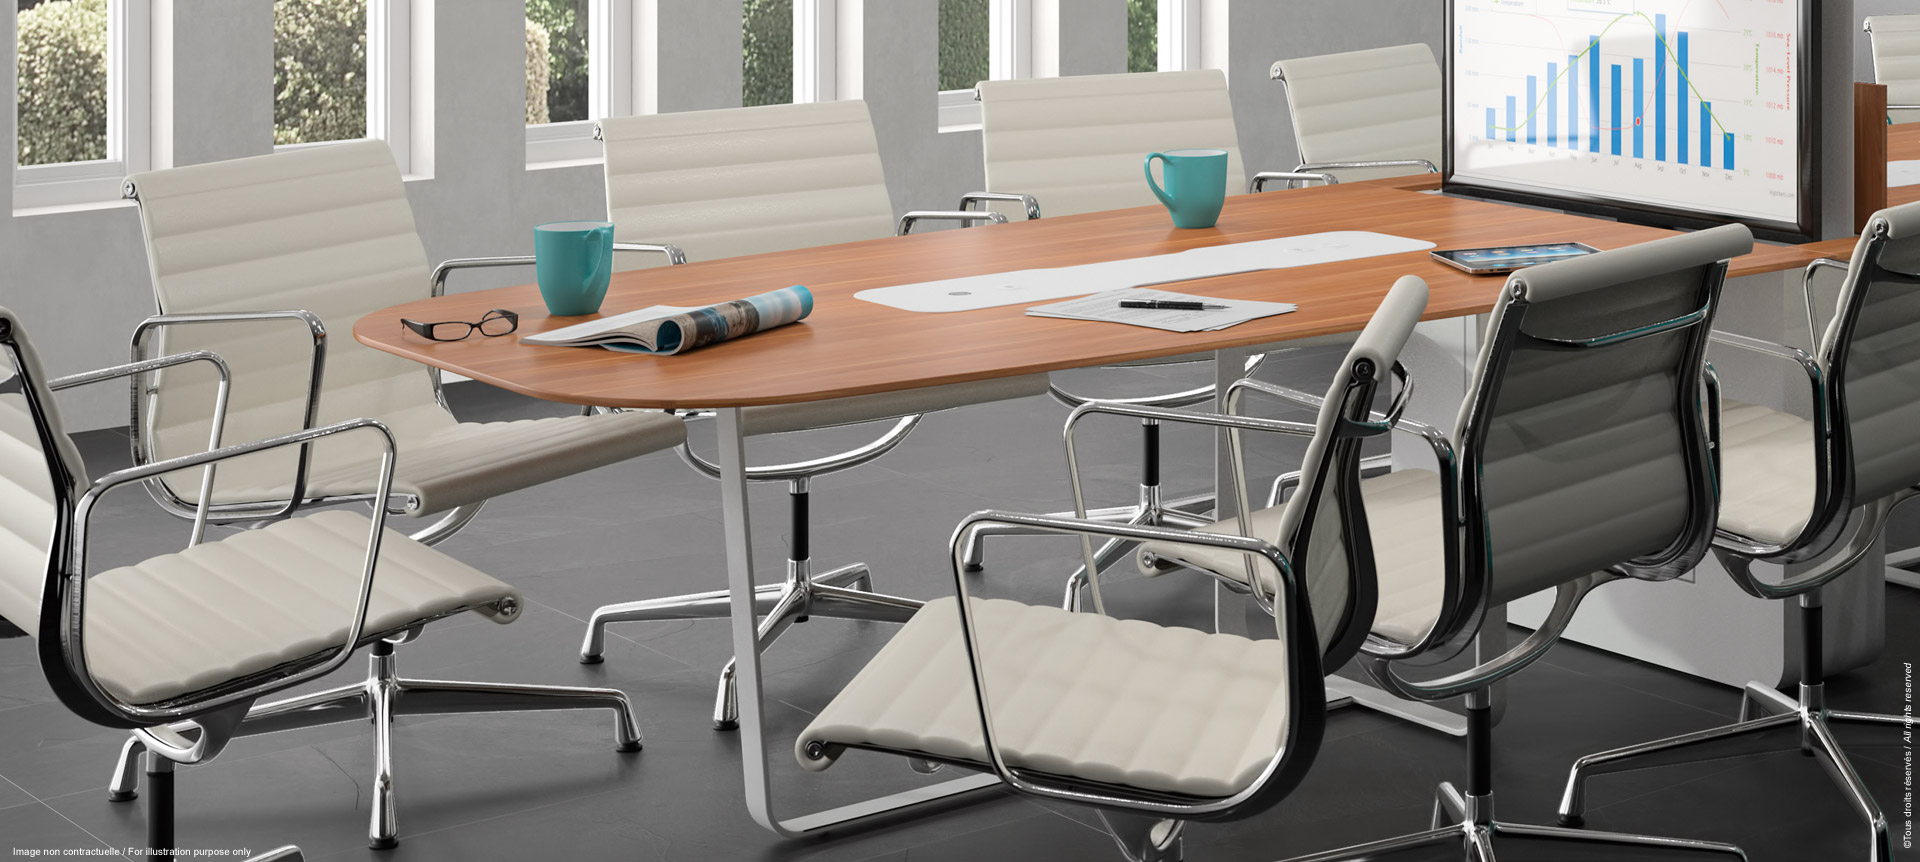 WEMEET MIXED - Meeting table for coworking or training with retractable screen